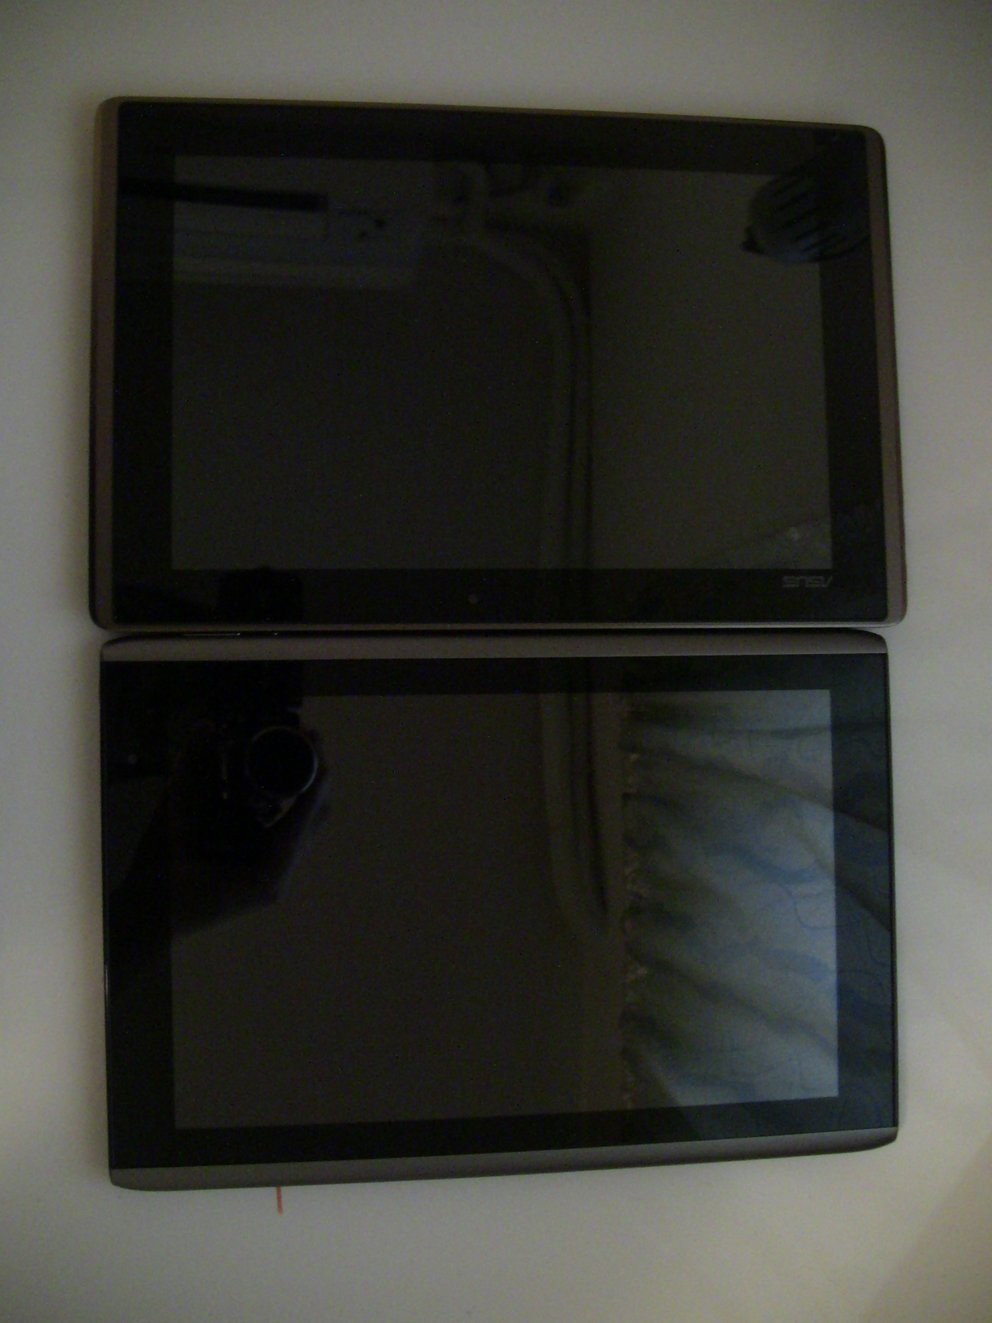 asus-eee-pad-transformer-vs-acer-iconia-tab-a500-3